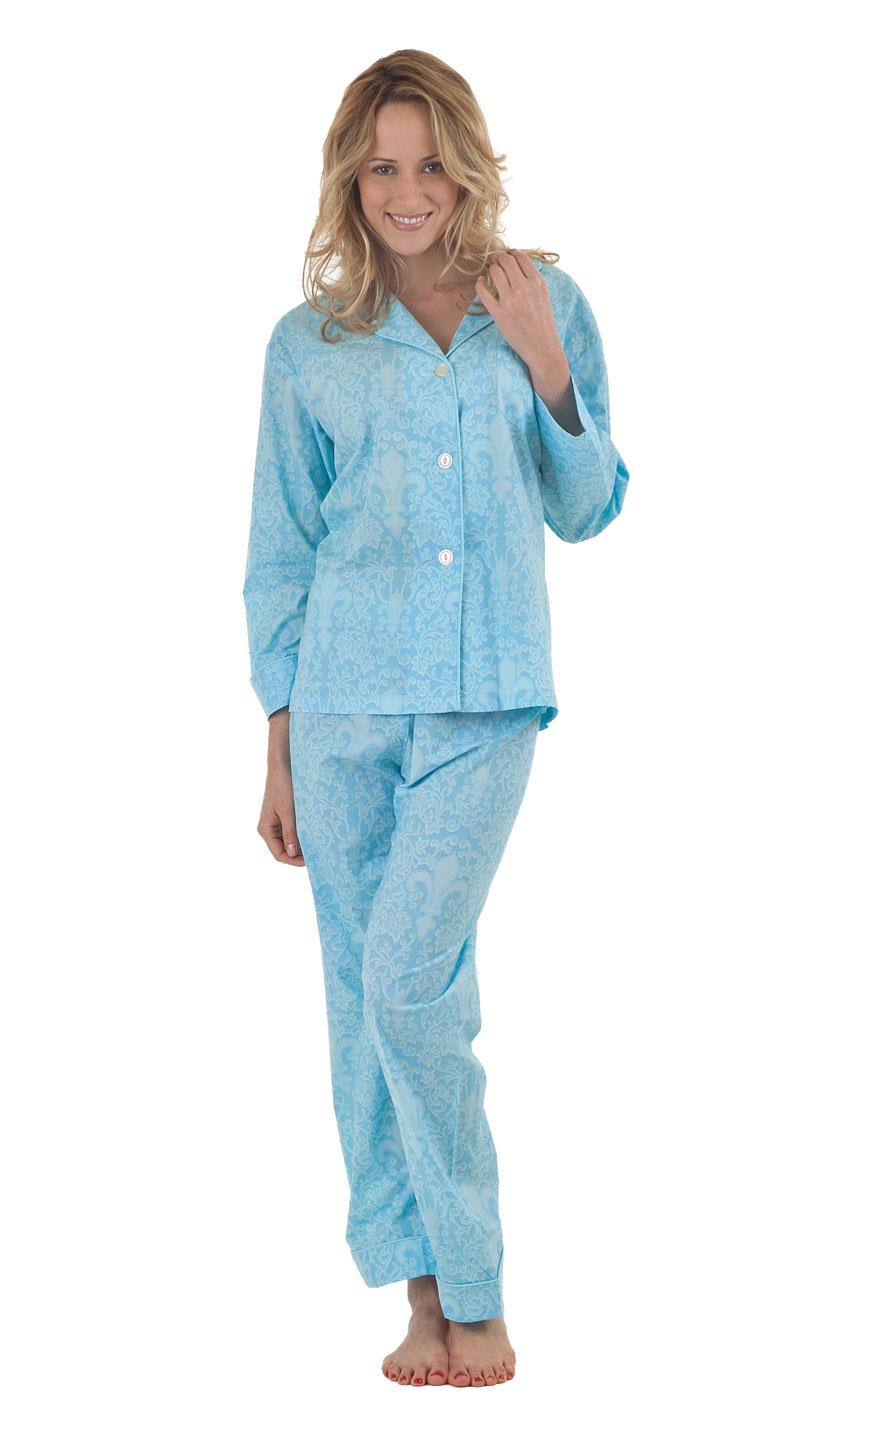 ladies night dress pyjamas - photo #36